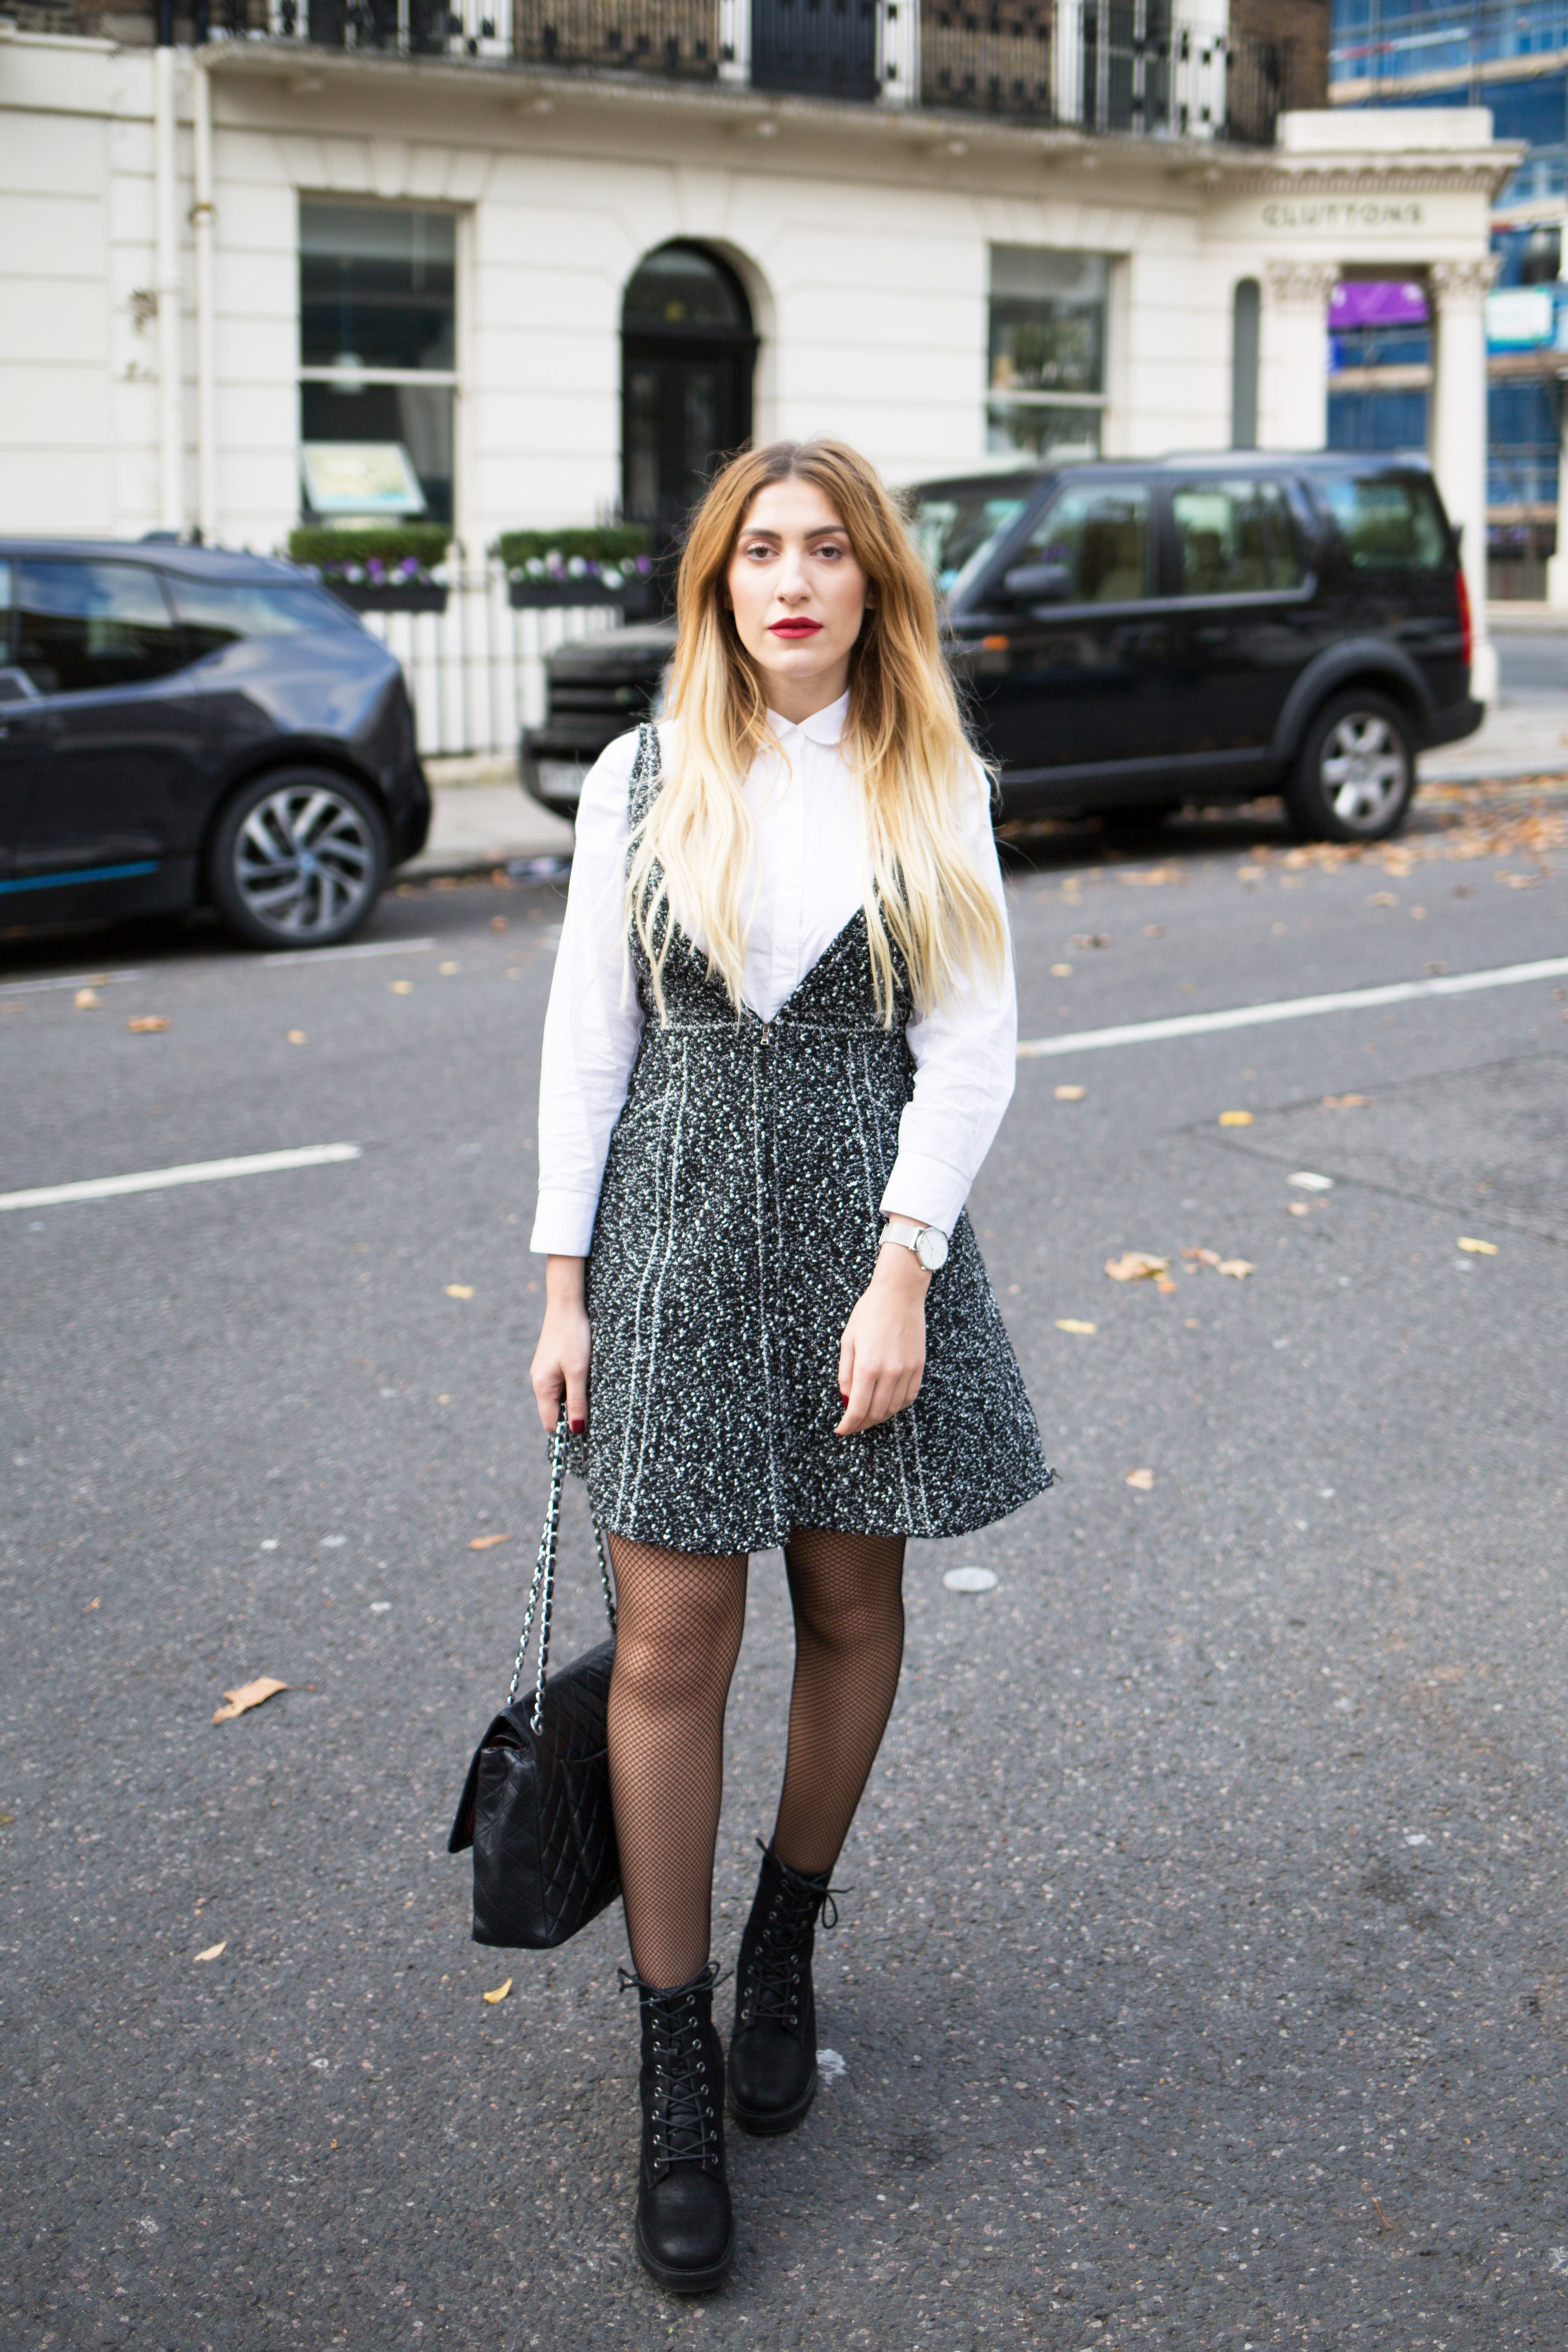 Trend Alert: How to Wear Fishnets